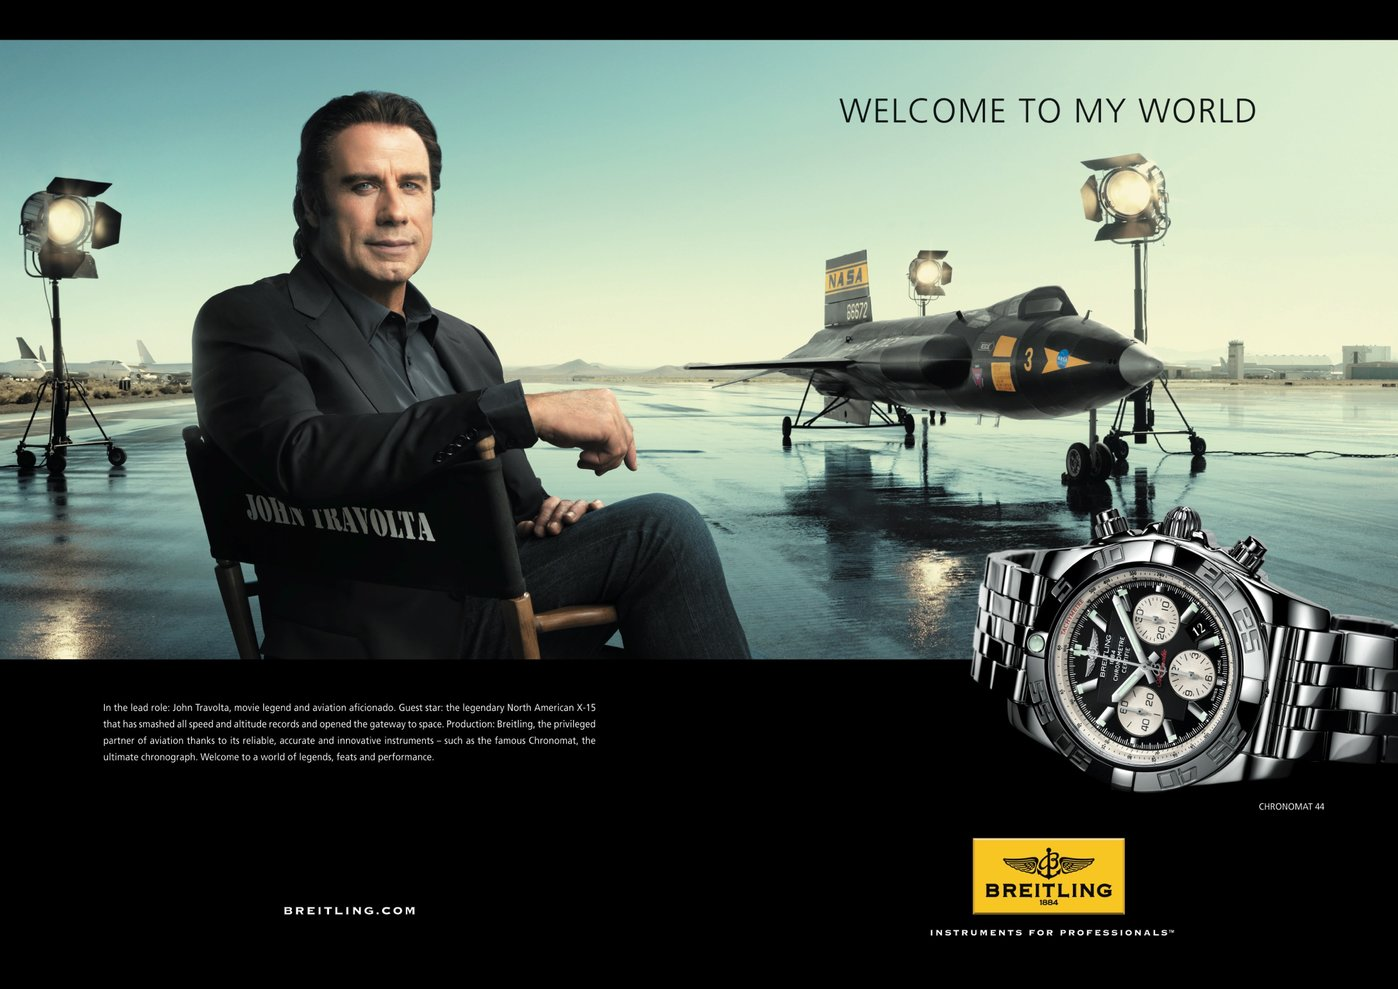 breitling_advertising_campaign_2015_-_john_travolt_002_aotw.jpg